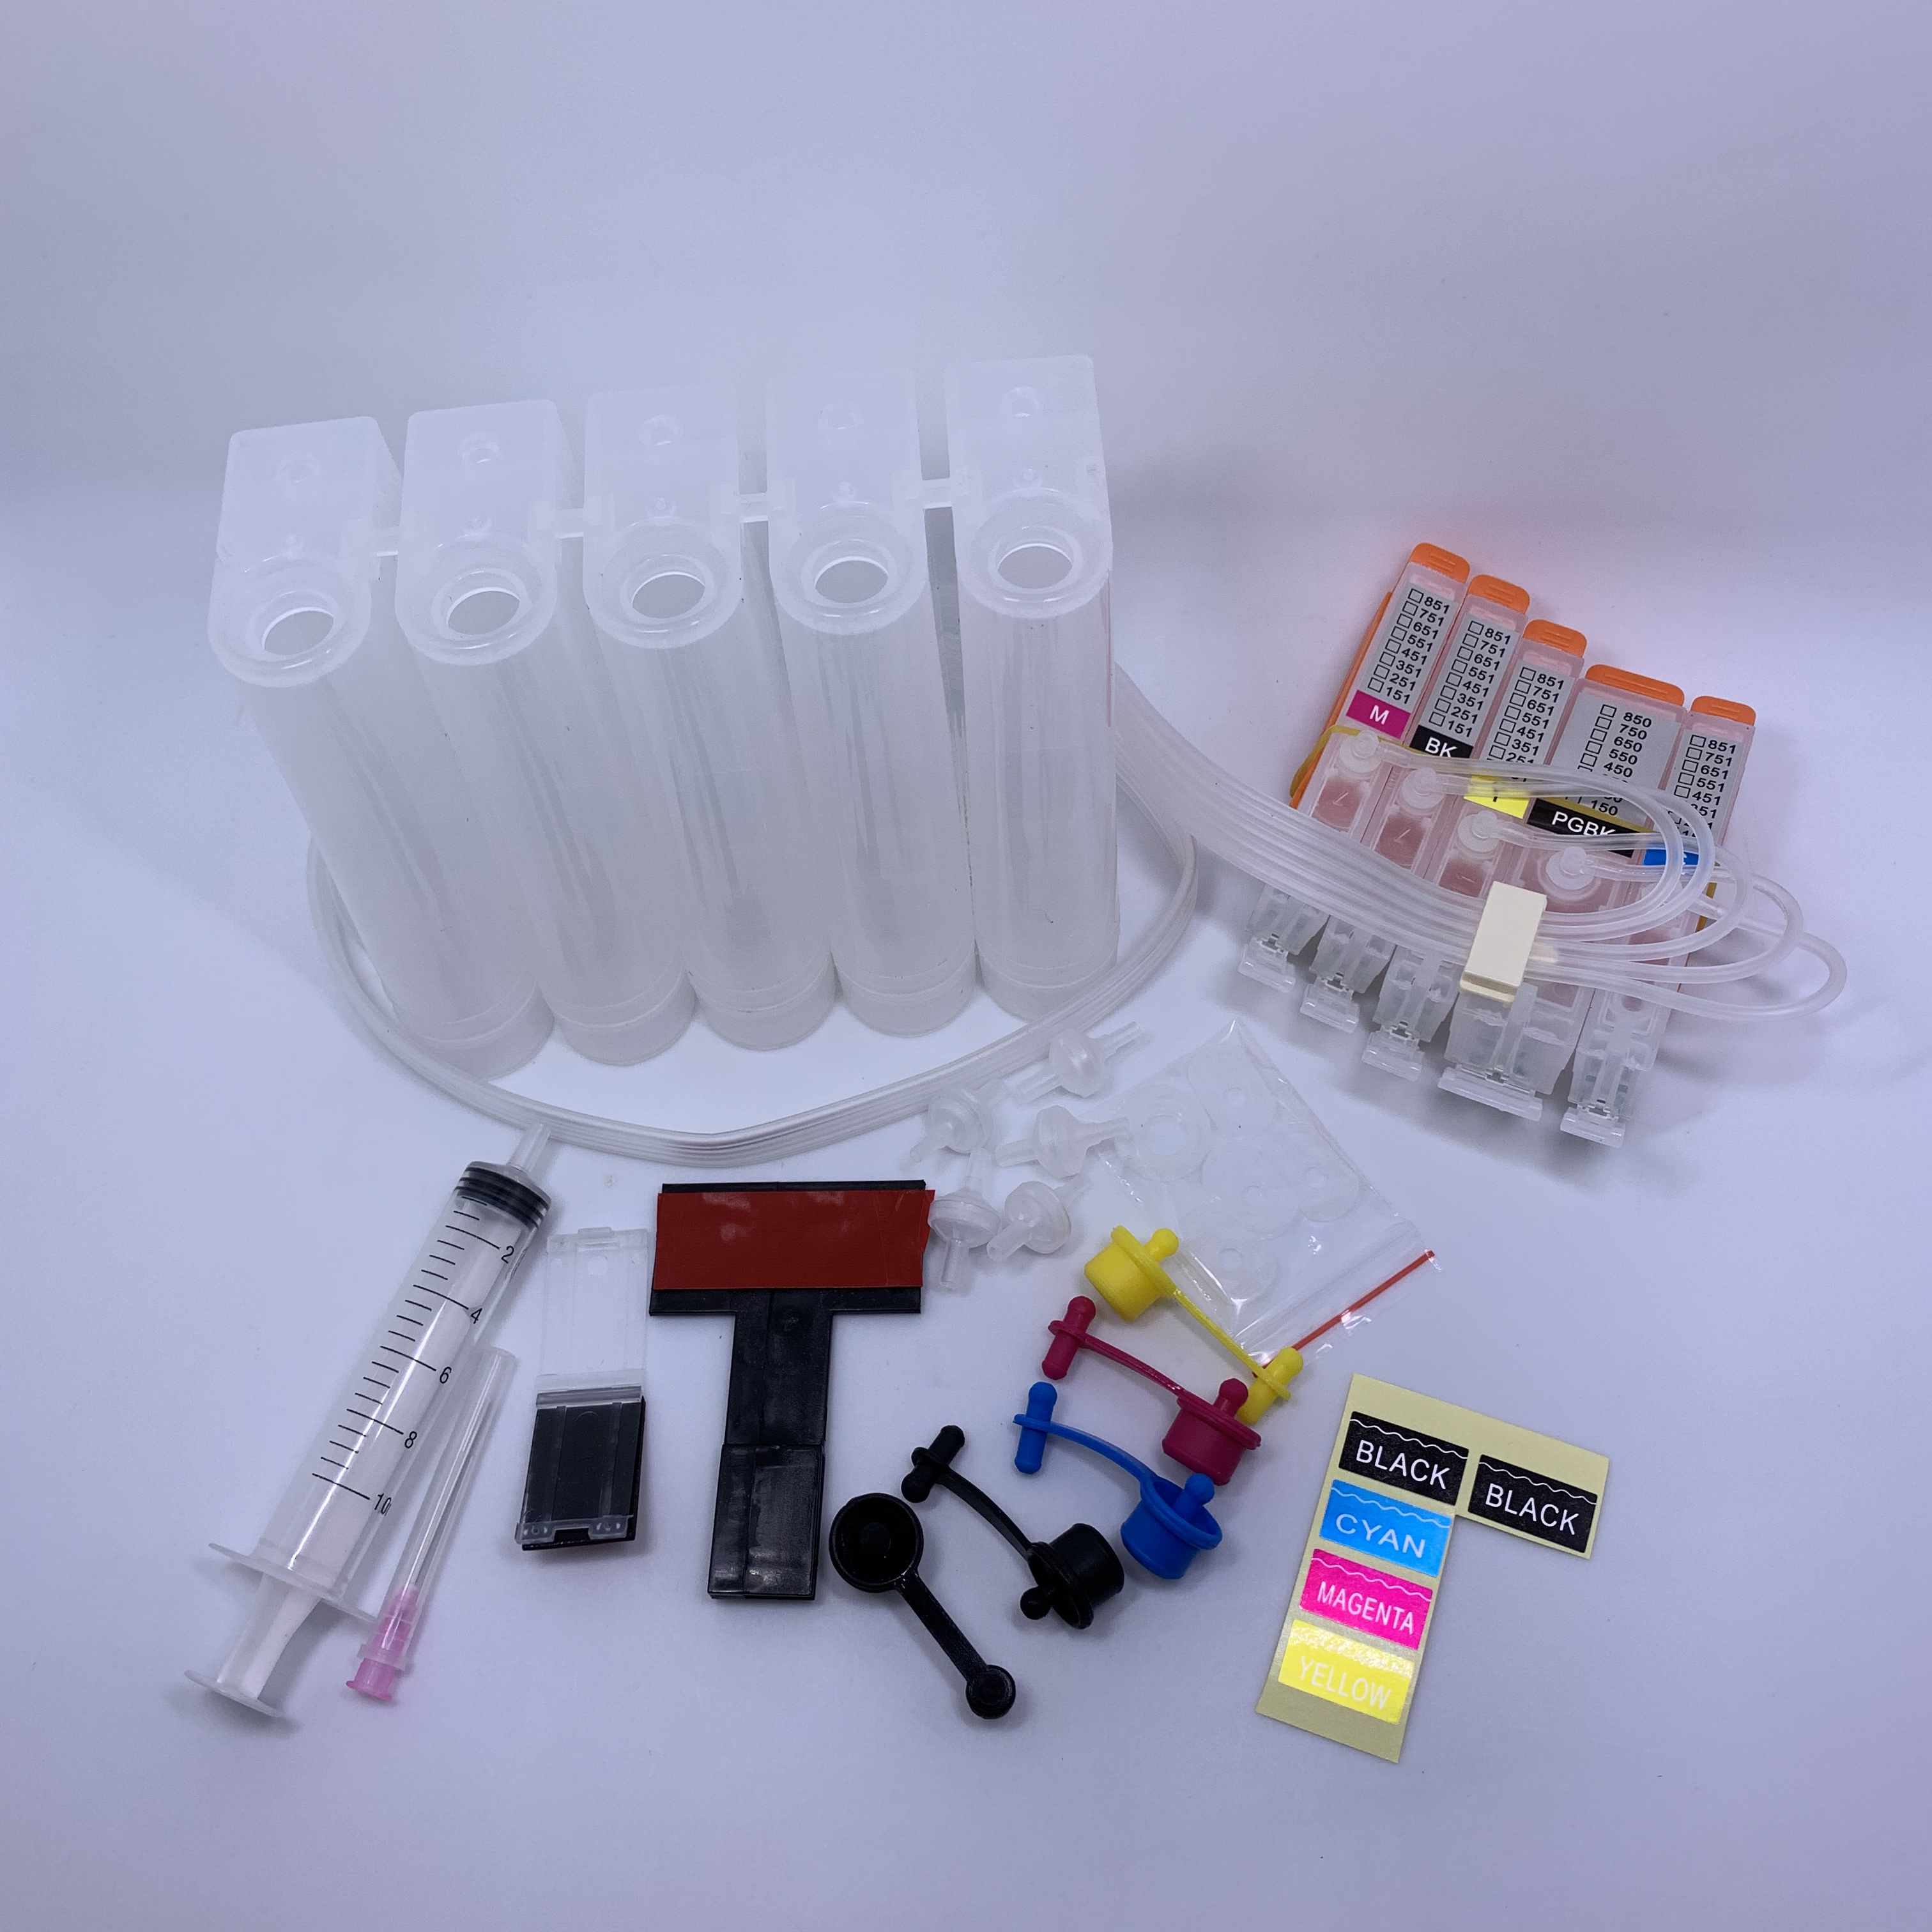 YOTAT 5Color CISS ink cartridge PGI 550XL PGI 550 CLI 551 for Canon PIXMA ip7250 iP8750 MG5450 MX725 MX925 MG6450 MG5550 IX6850 in Continuous Ink Supply System from Computer Office